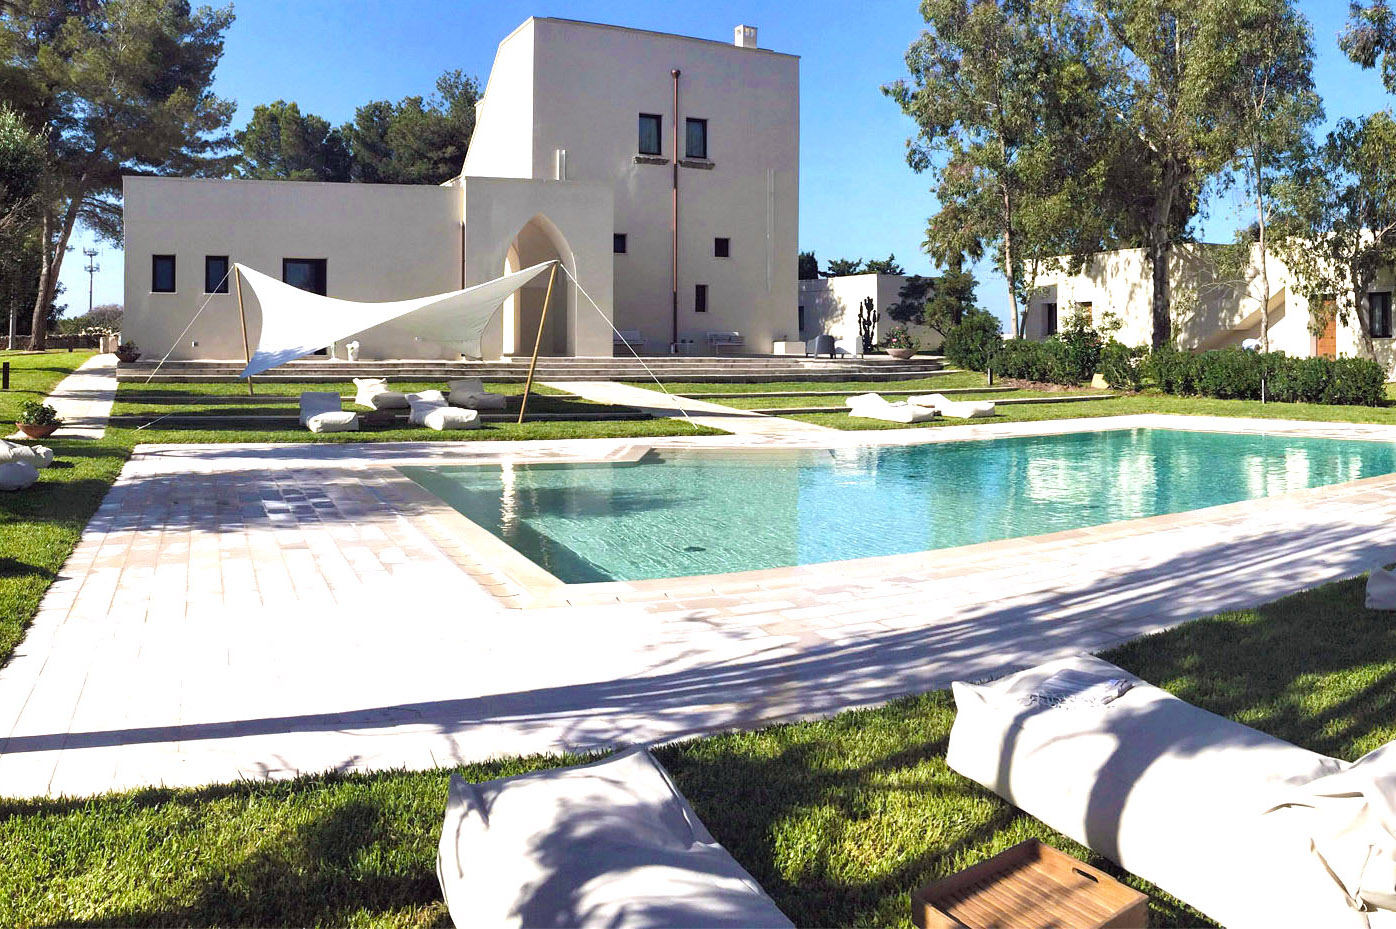 location villa luxe, Italie, POUGAL 26116